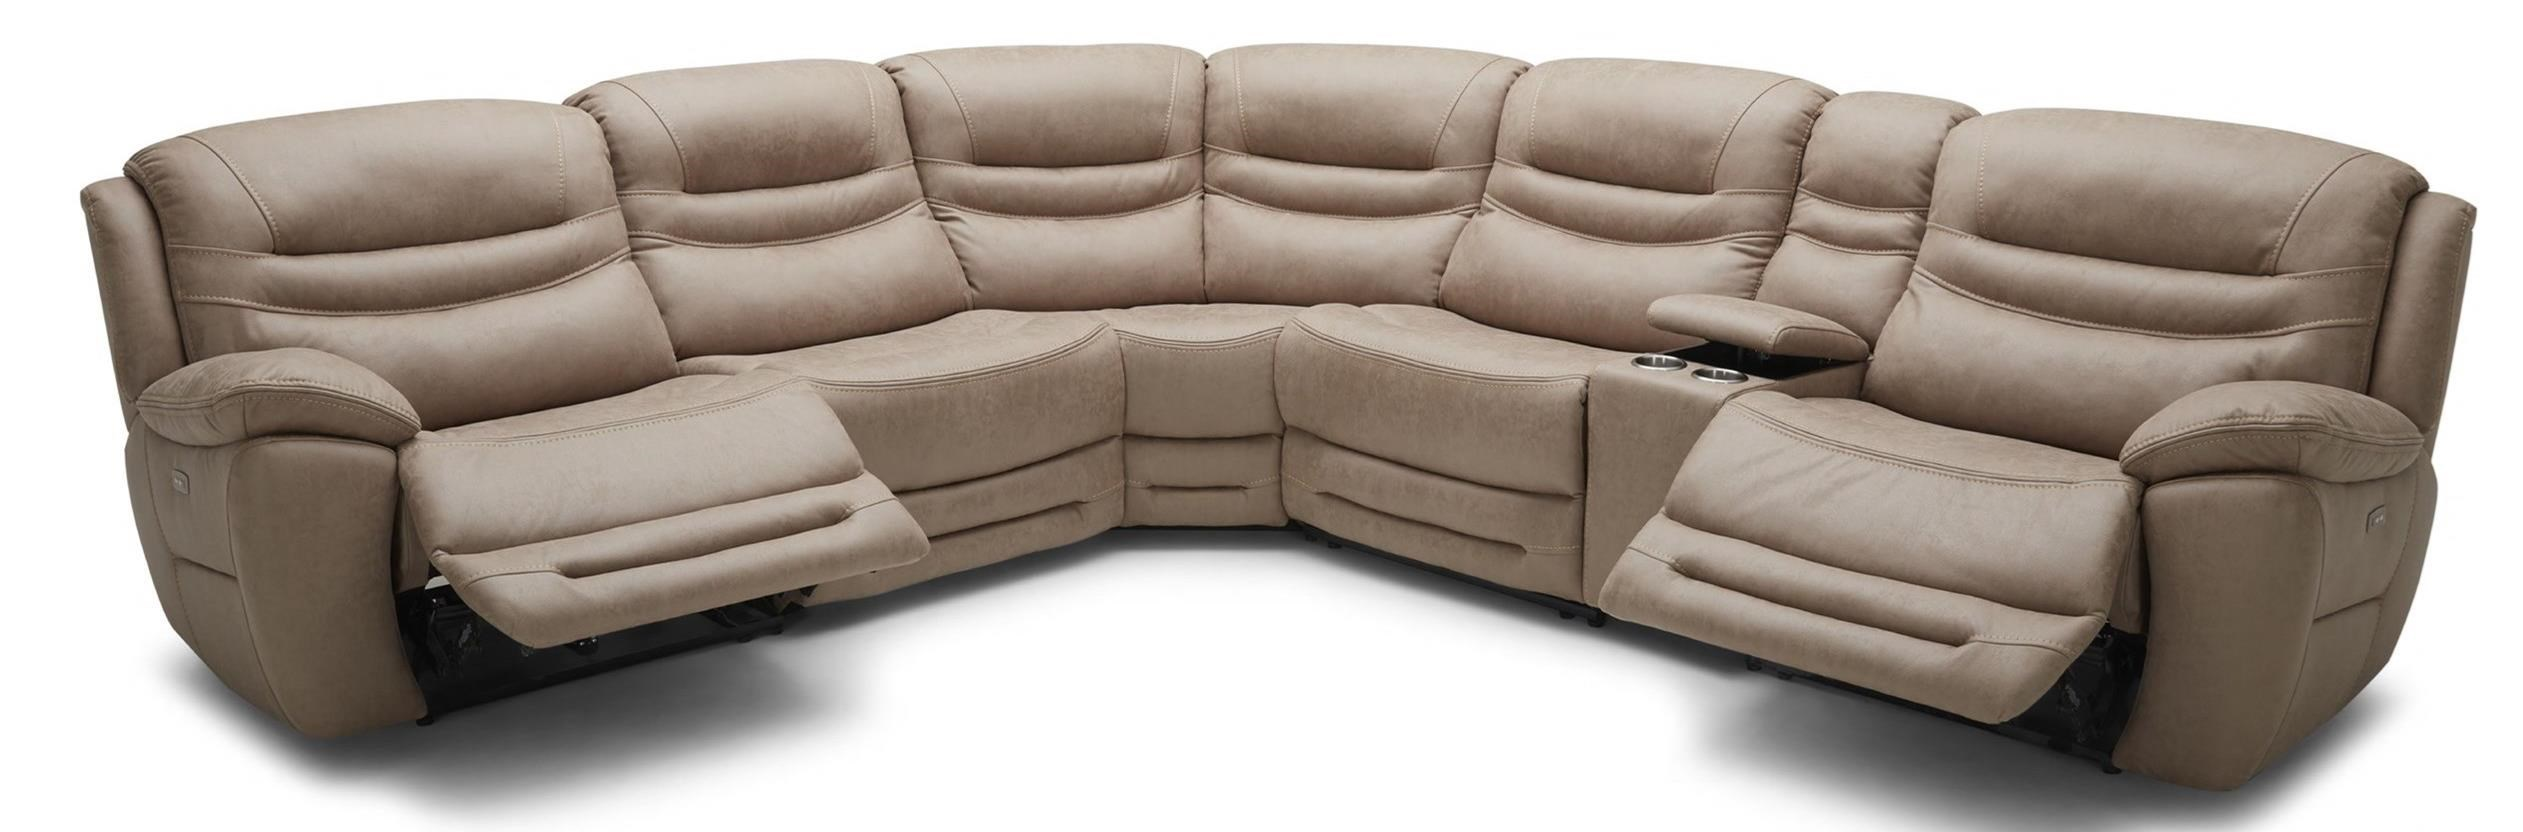 km083 six piece power console reclining sectional sofa with 3 recliners and power headrests by kuka home at beck s furniture